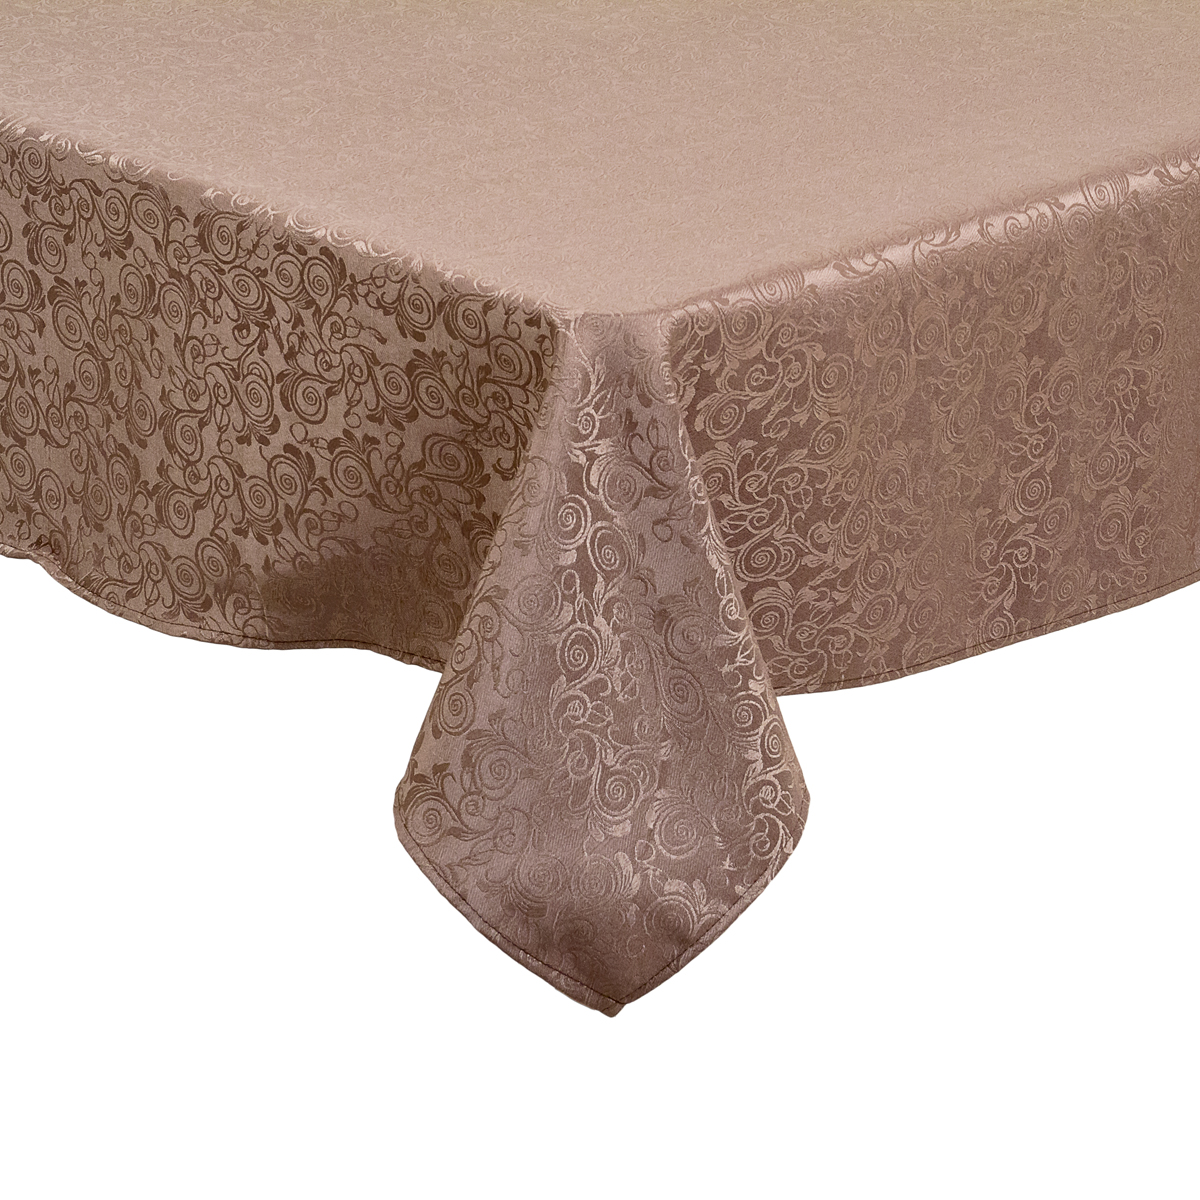 52 x 70 in. Rectangular Shimmering Filigree Tablecloth Chocolate